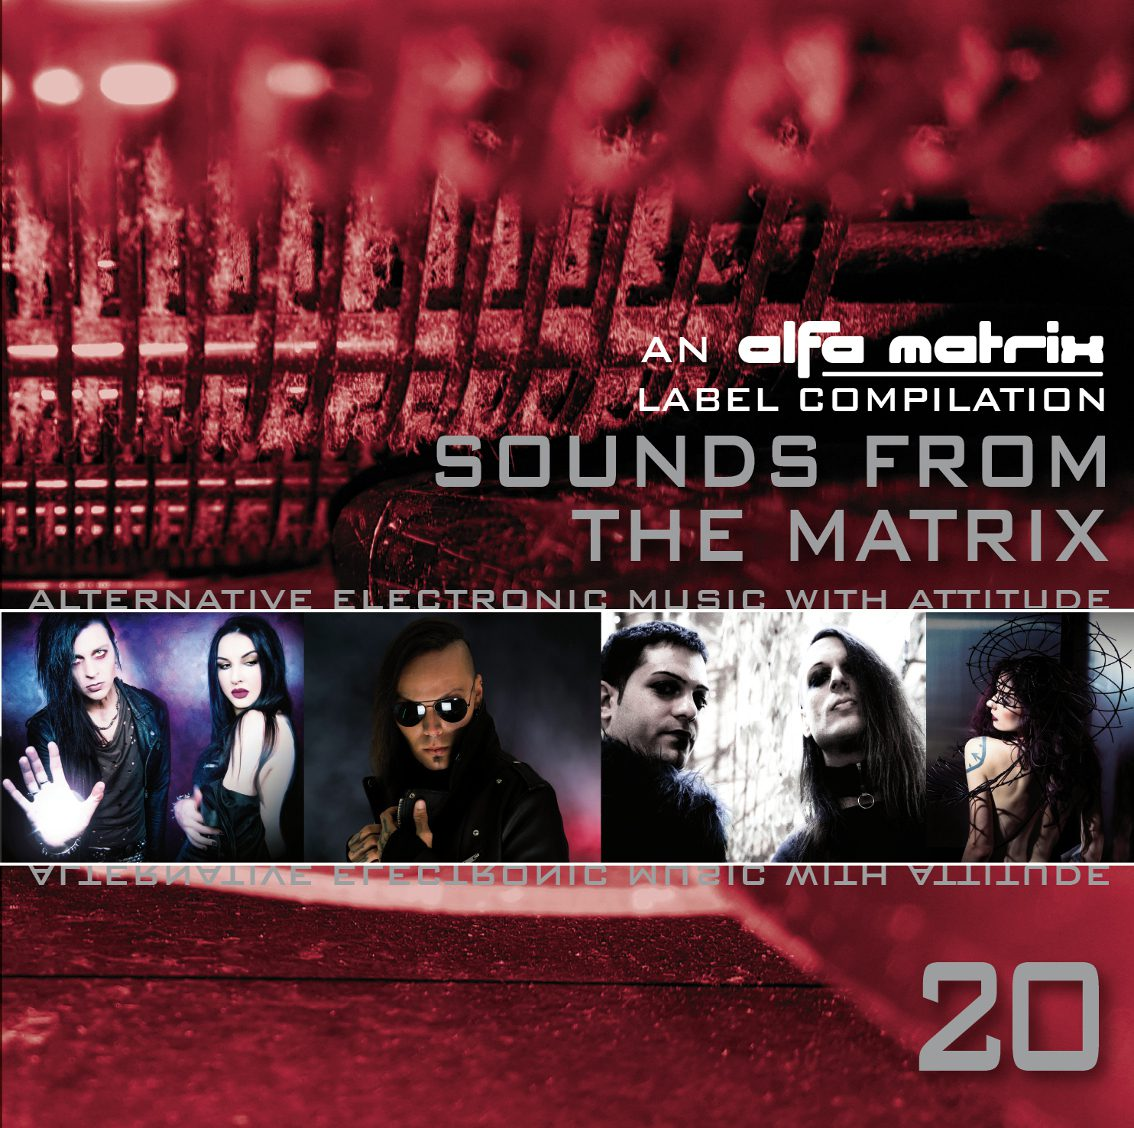 Alfa Matrix releases'Sounds From The Matrix 20' on Bandcamp as well